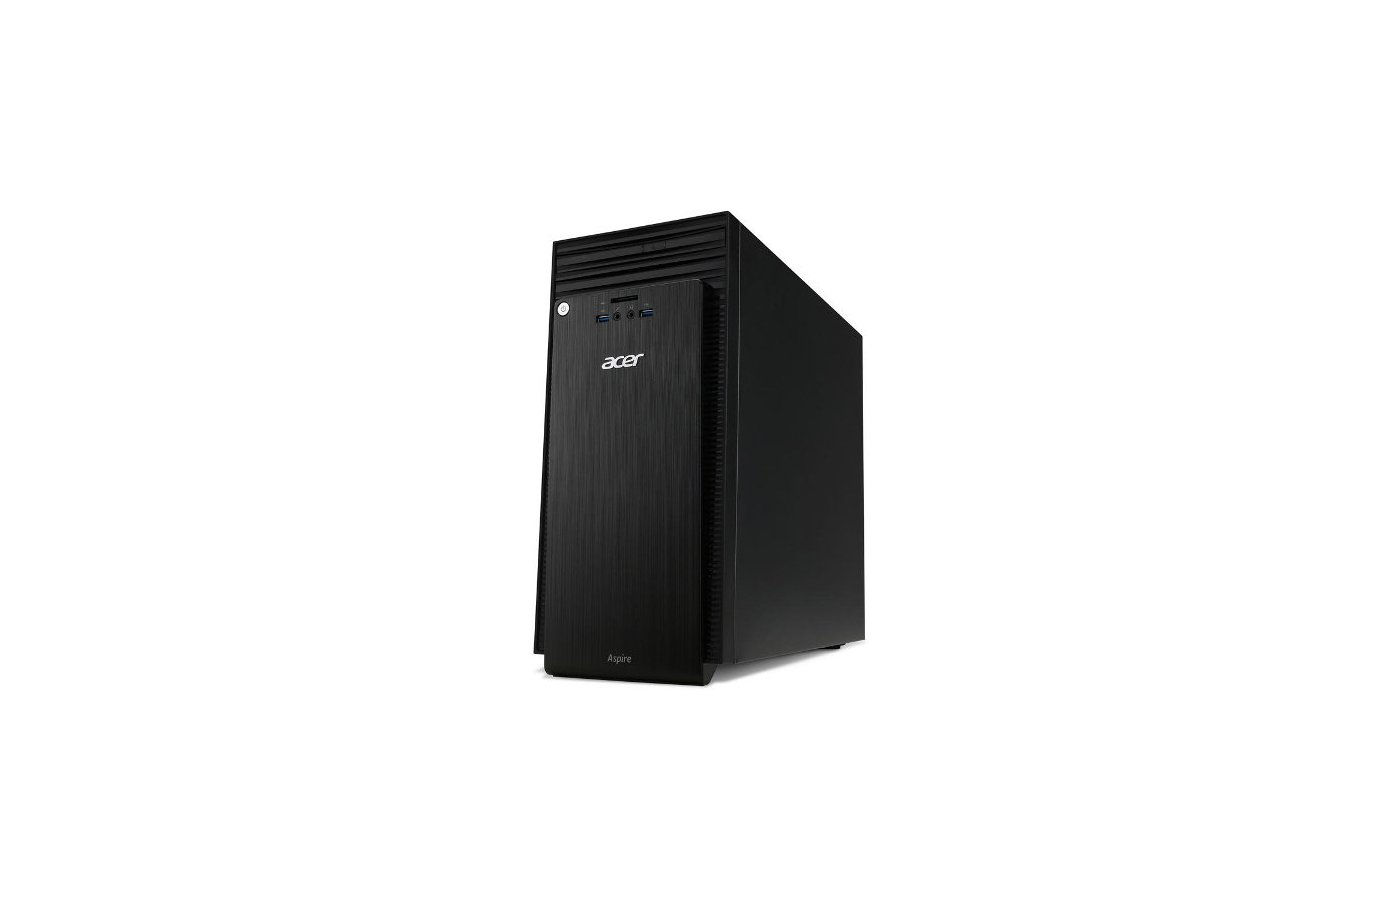 Системный блок Acer Aspire TC-704 /DT.SZFER.001/